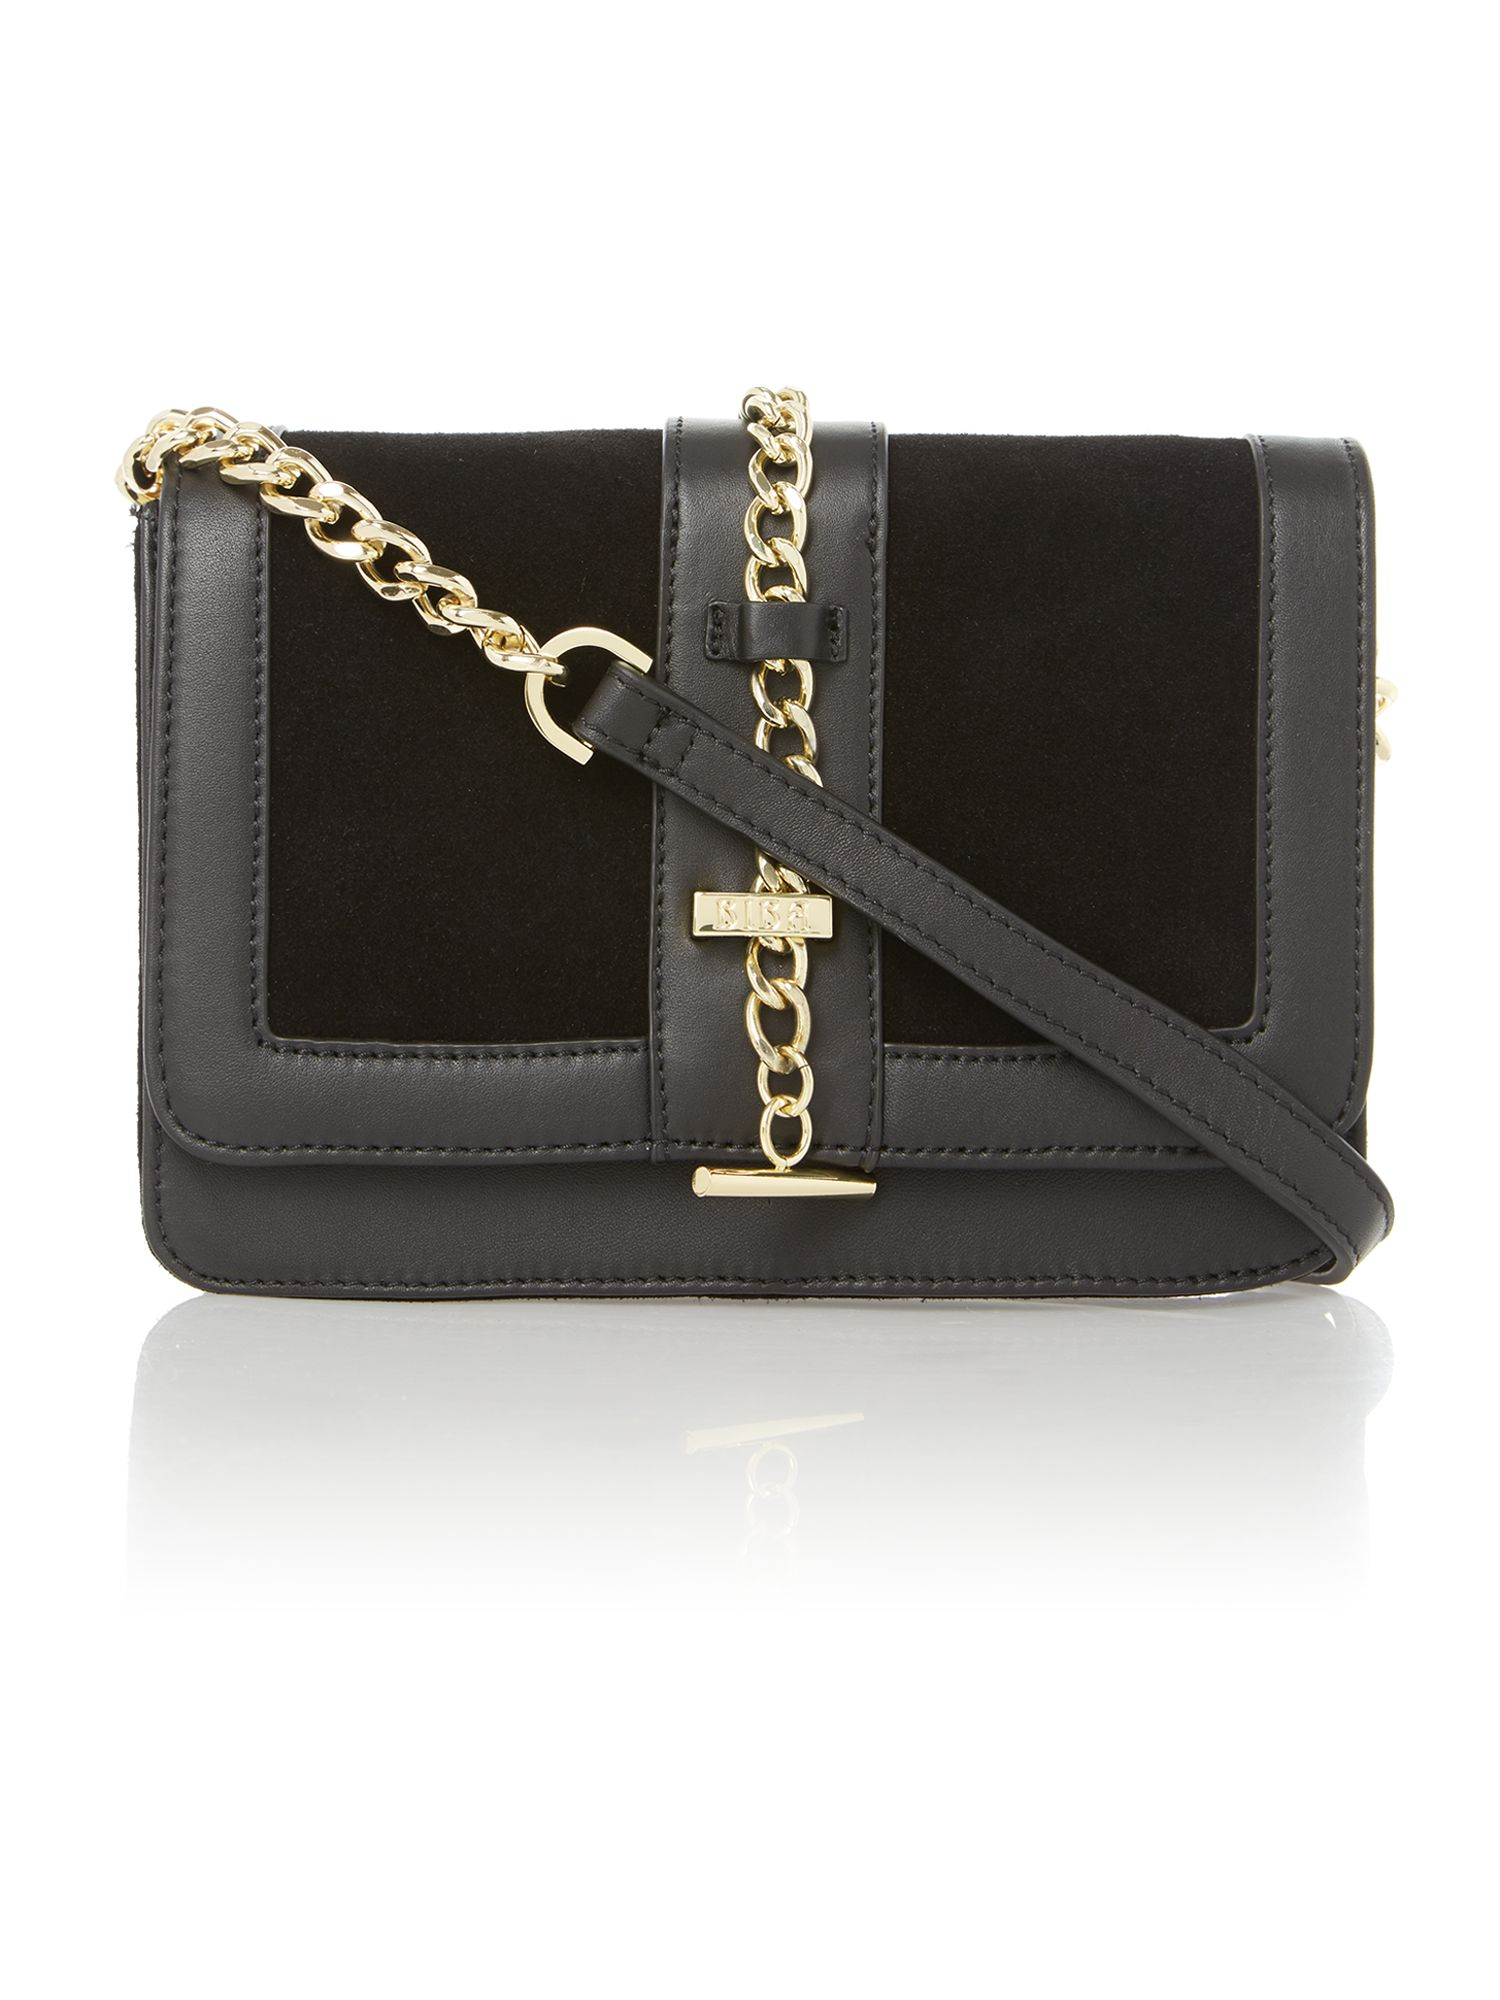 Orelia crossbody handbag